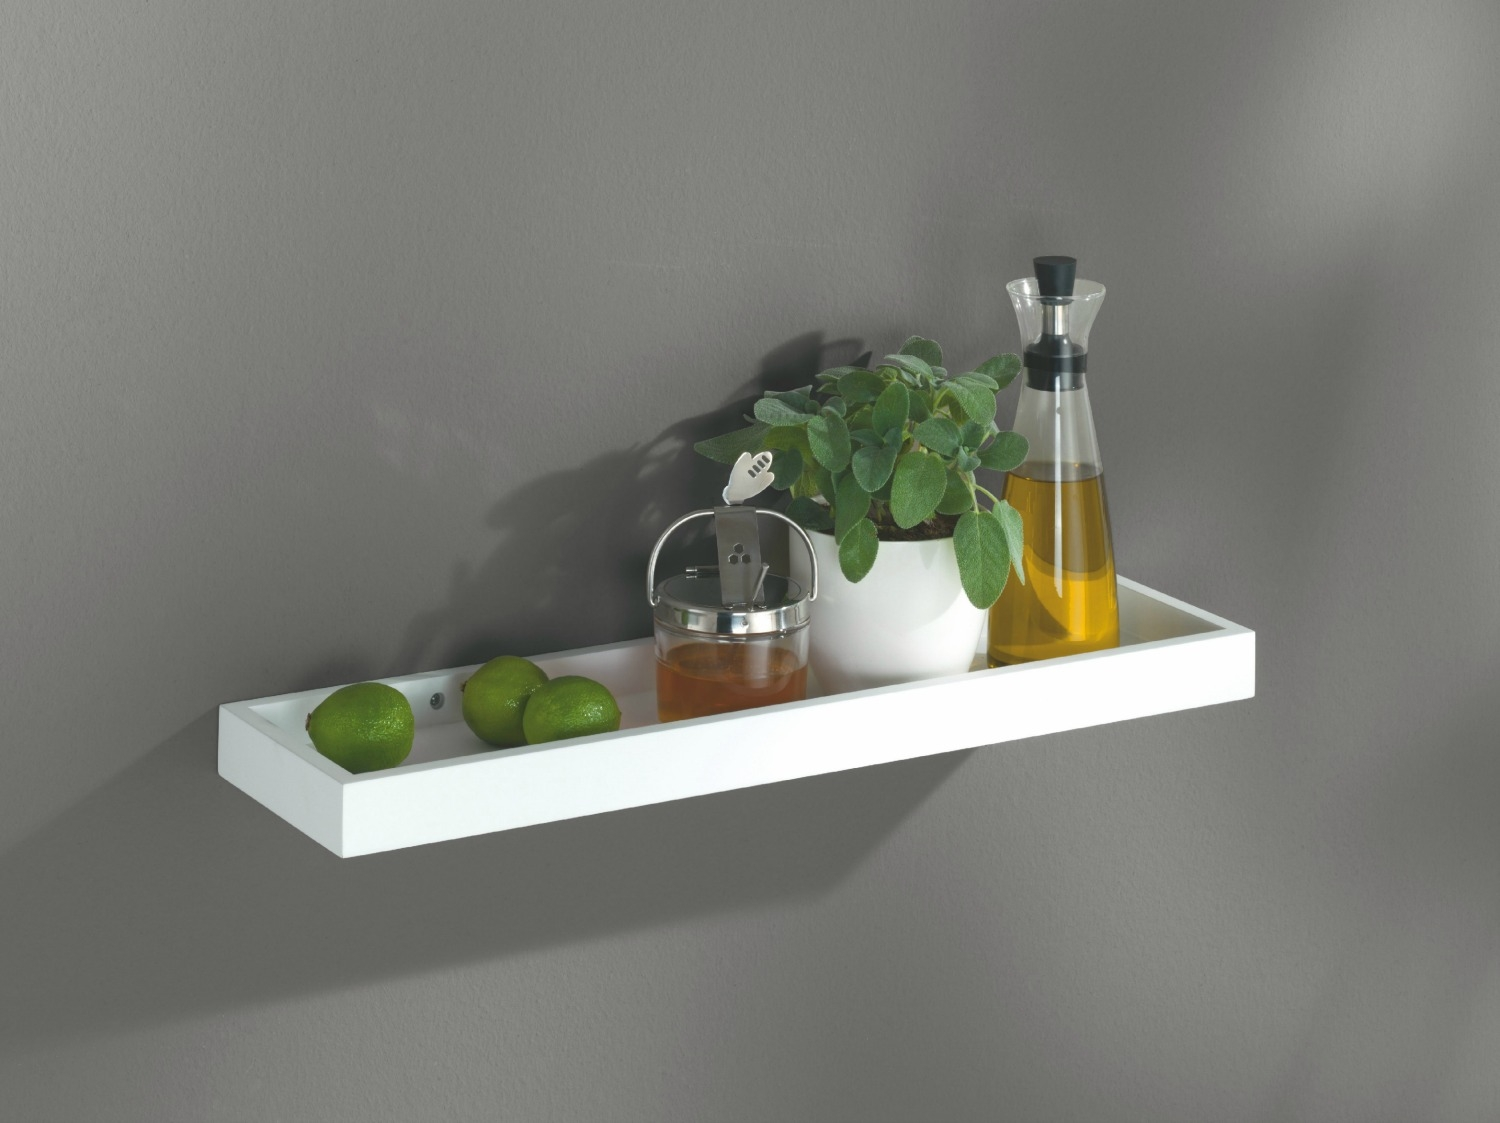 Floating Shelves Floating Wall Shelves In Great Variety Of Sizes Throughout Floating Wall Shelves (#4 of 12)